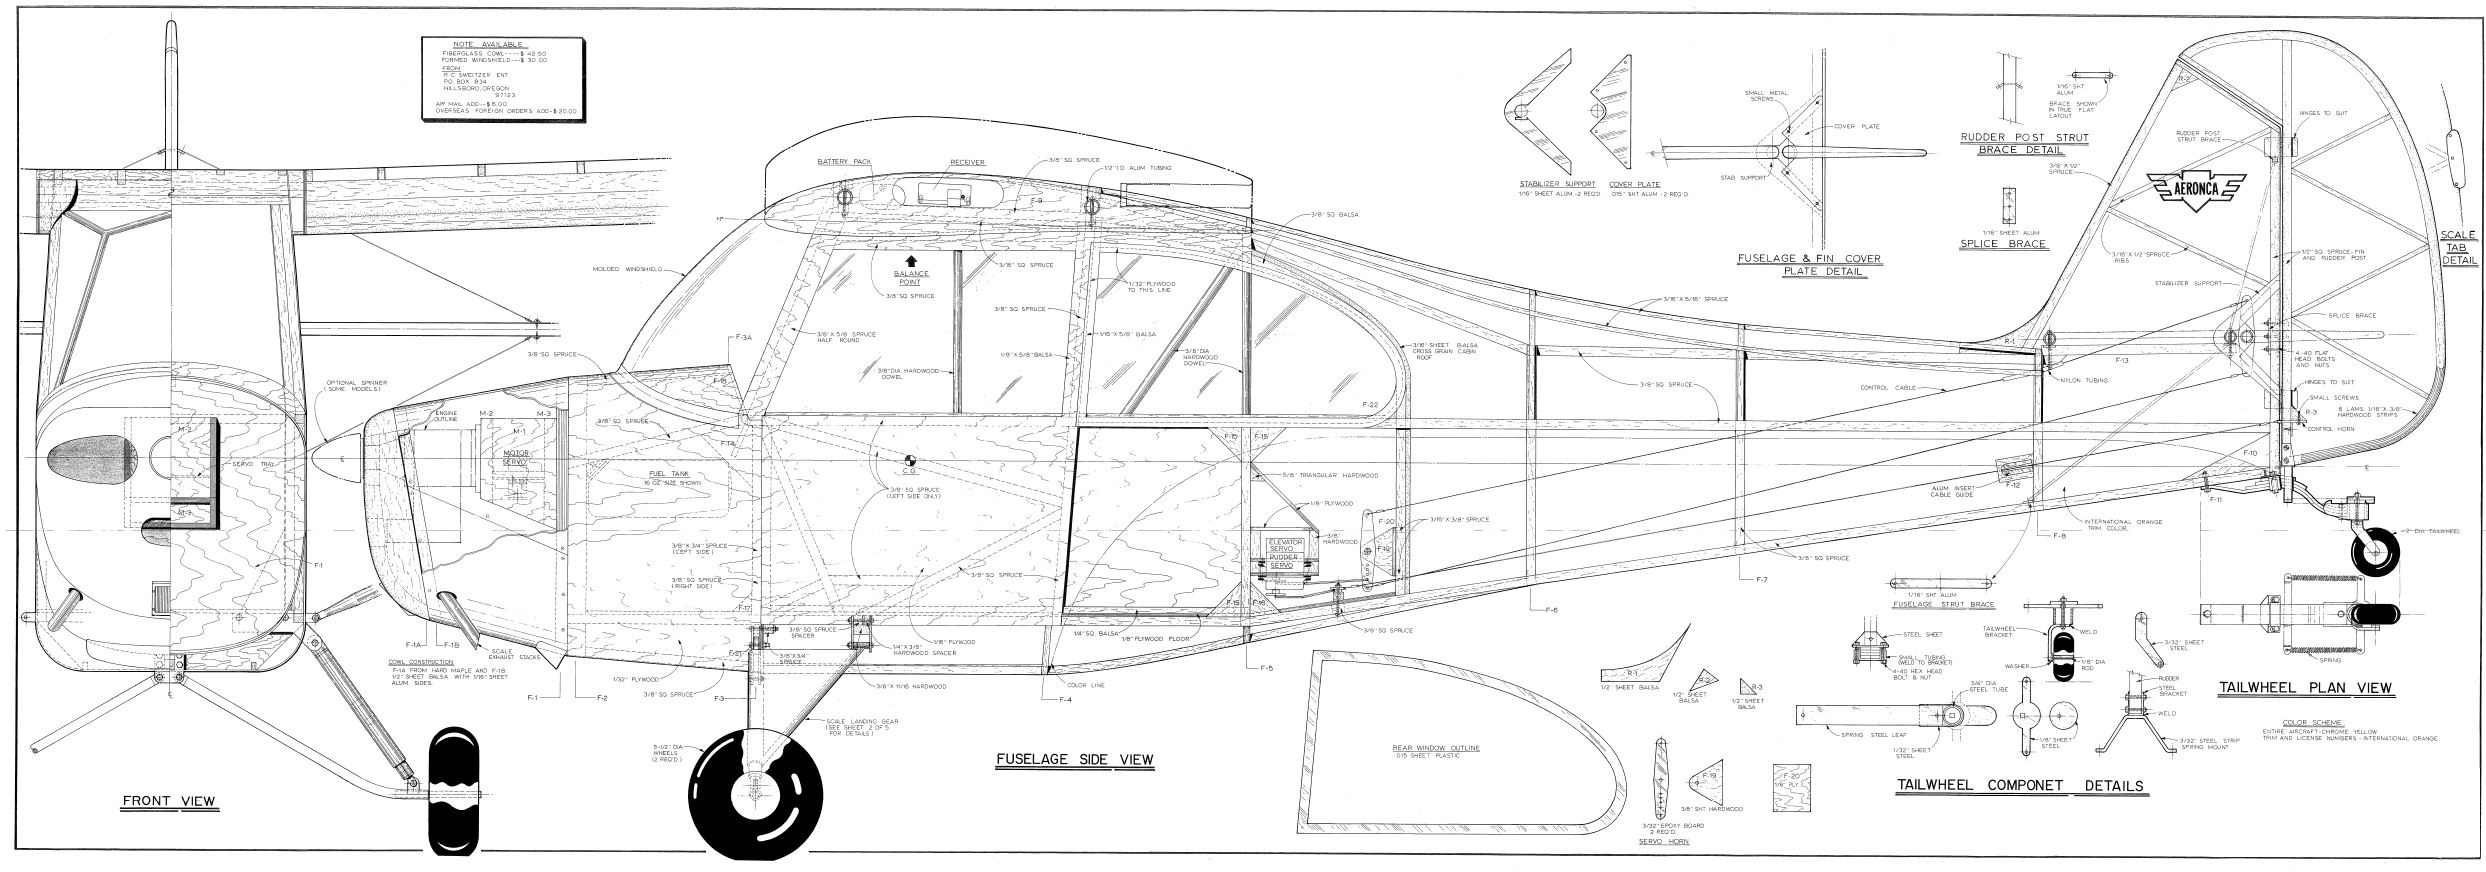 550 Full Scale Rc Model Airplane Plans Templates Scratch